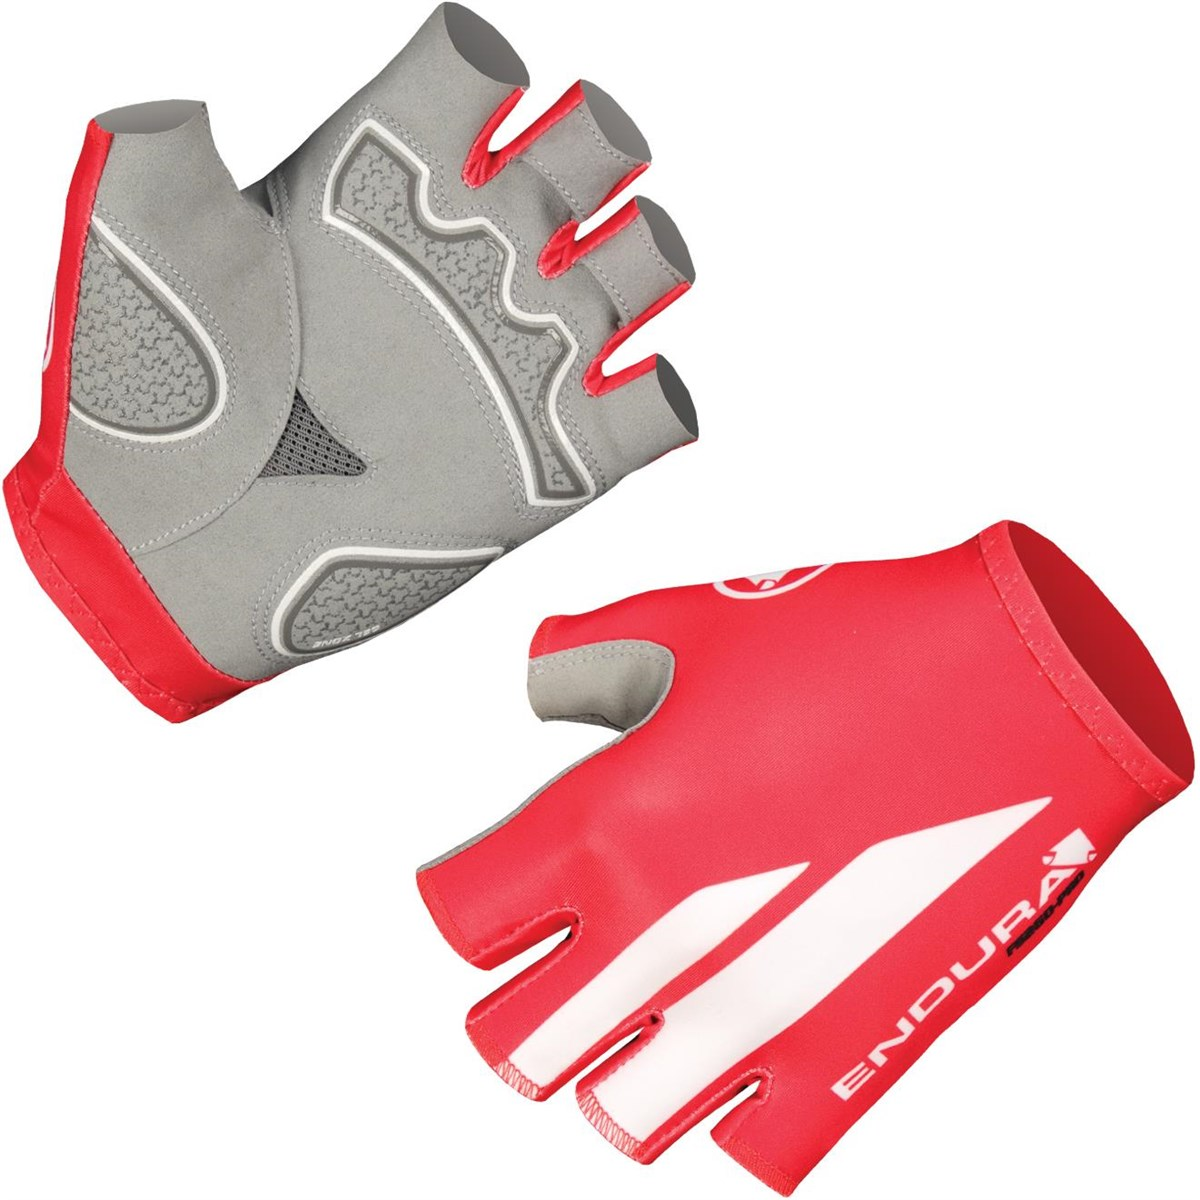 Endura FS260 Pro Print Short Finger Cycling Gloves AW17